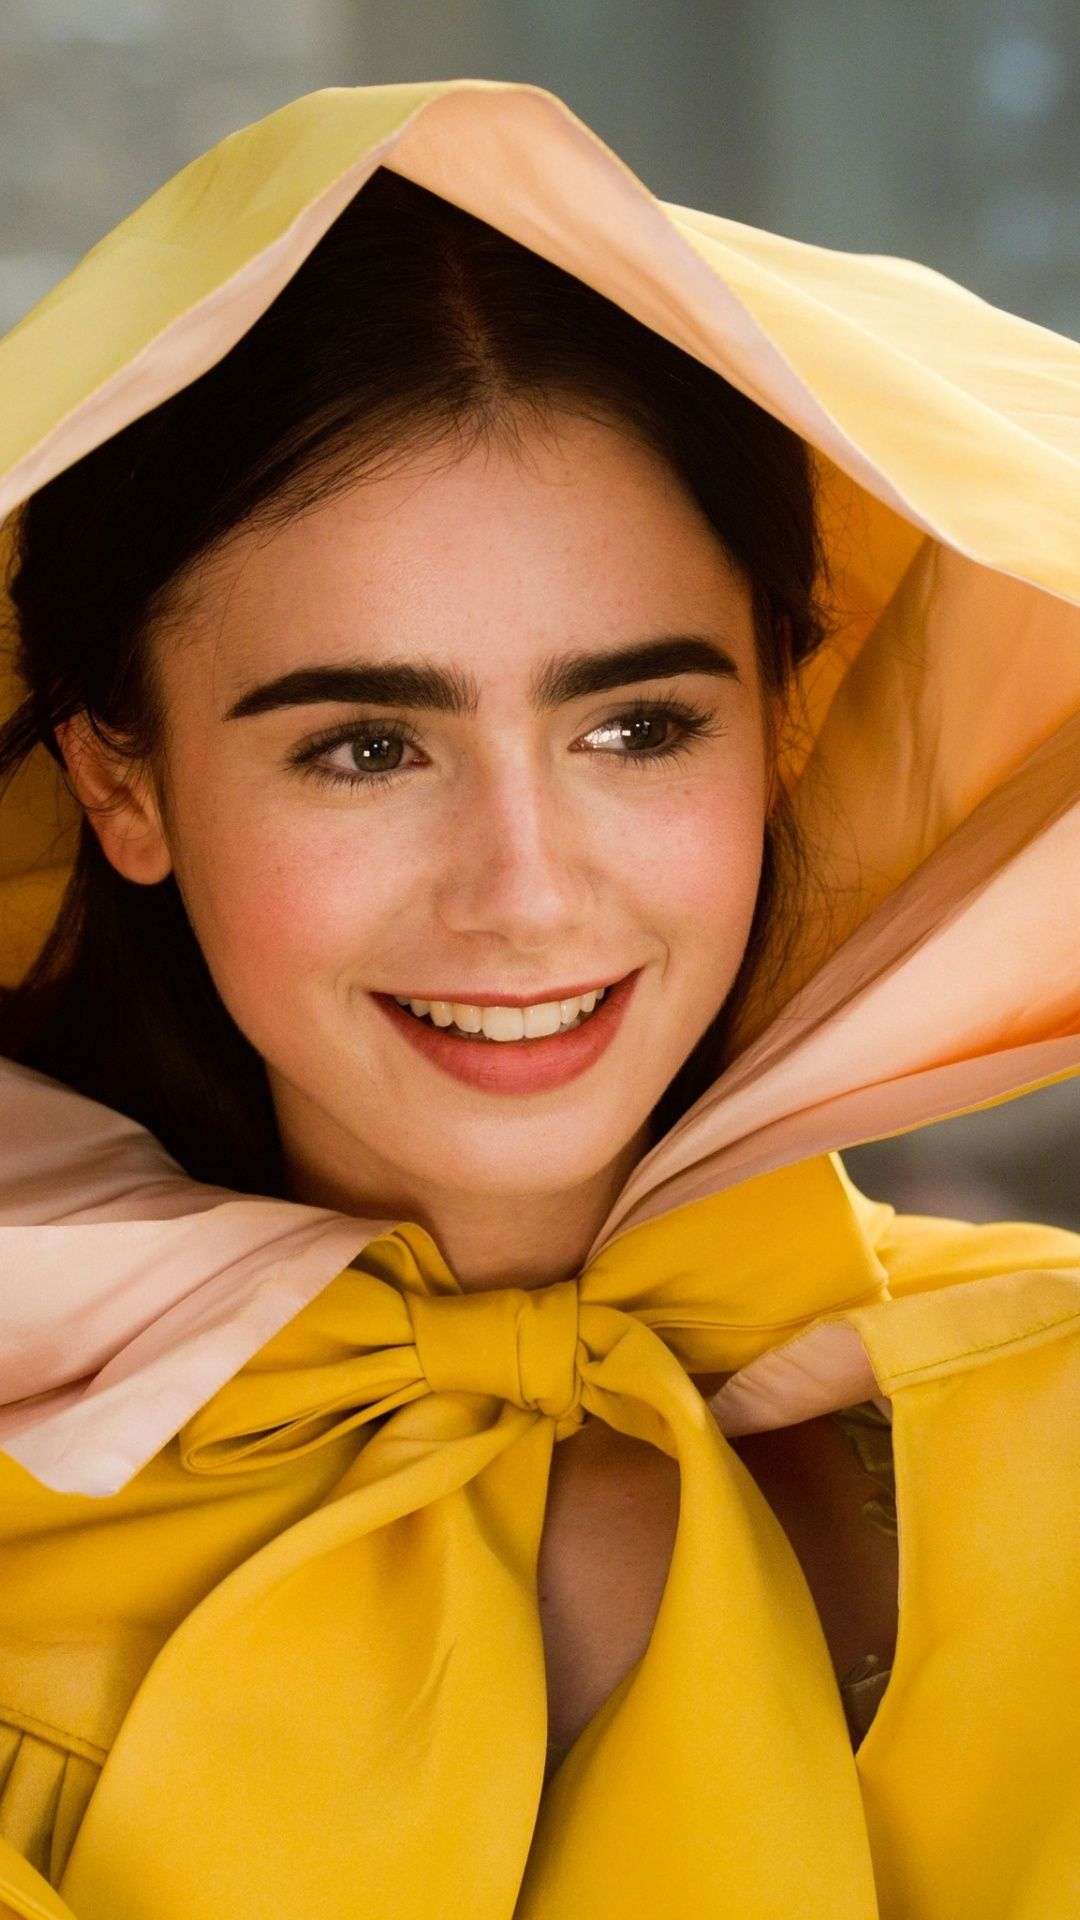 Smile beautiful Lily Collins 1080x1920 wallpaper lily collins 1080x1920